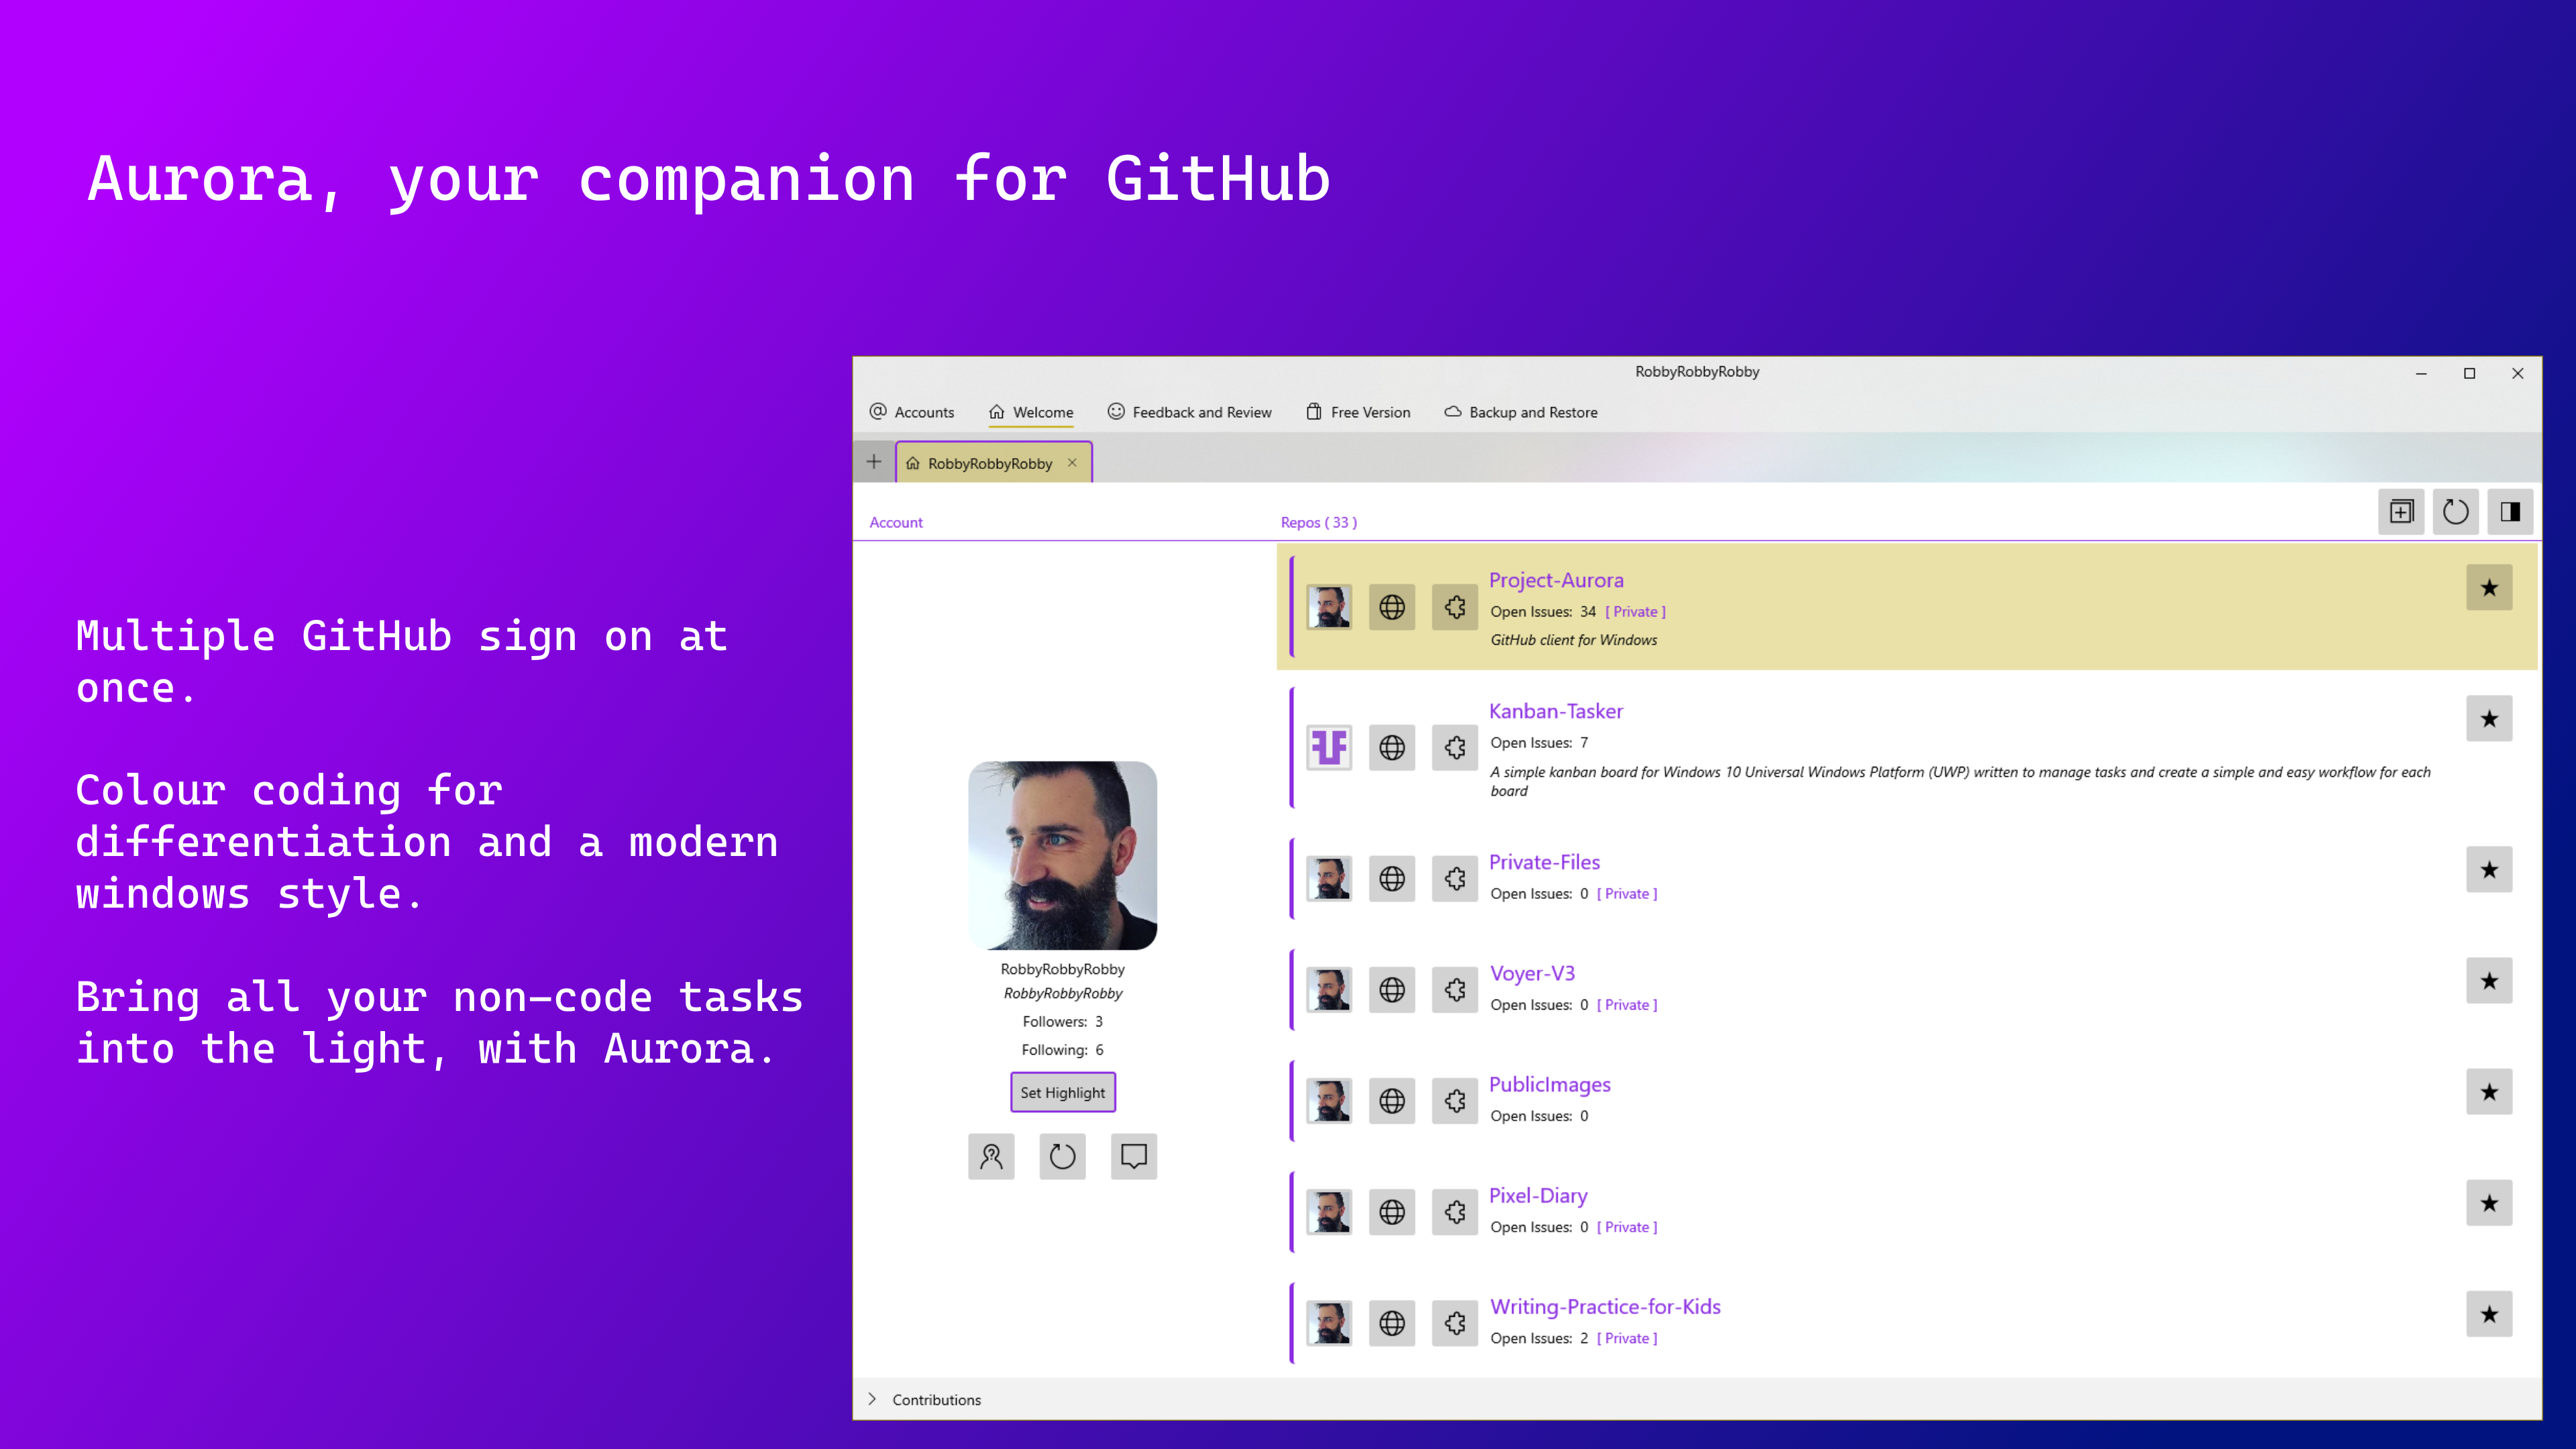 Preview image for Aurora for GitHub